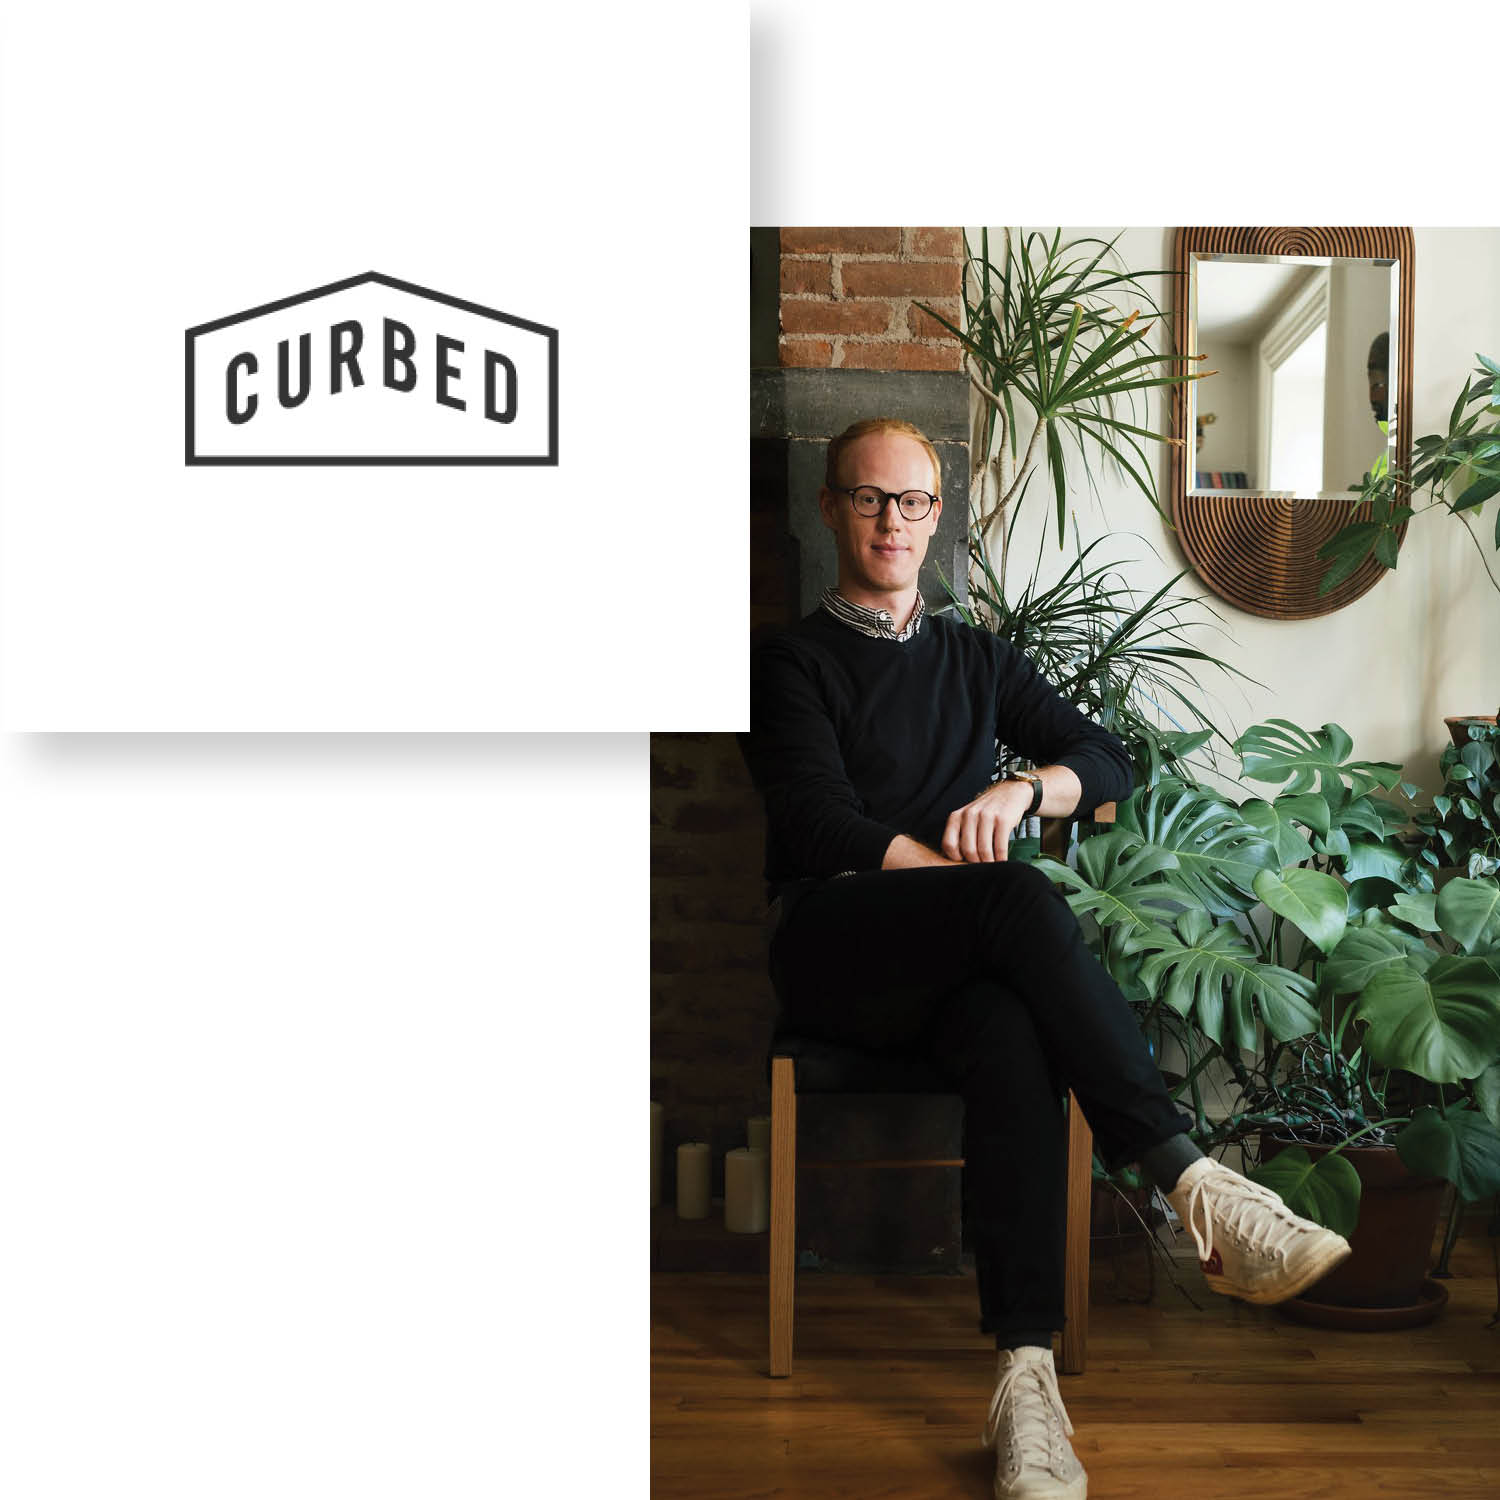 Curbed, January 2018